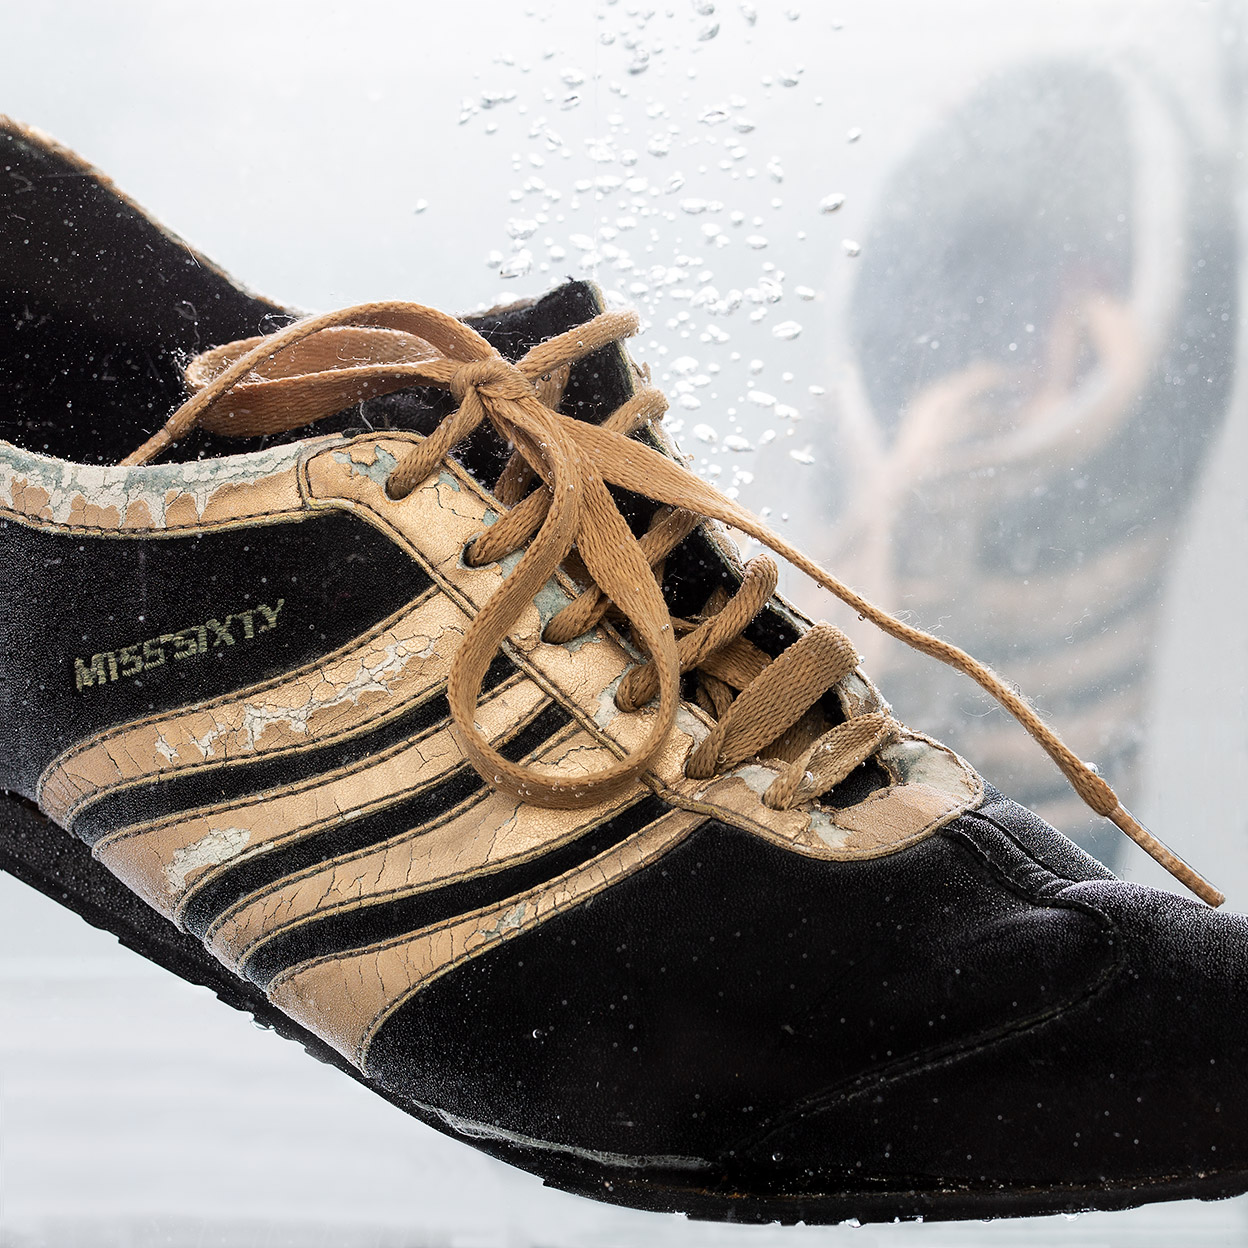 Fashion under Water - Shoes by Miss Sixty, by Gunnar Wöbse